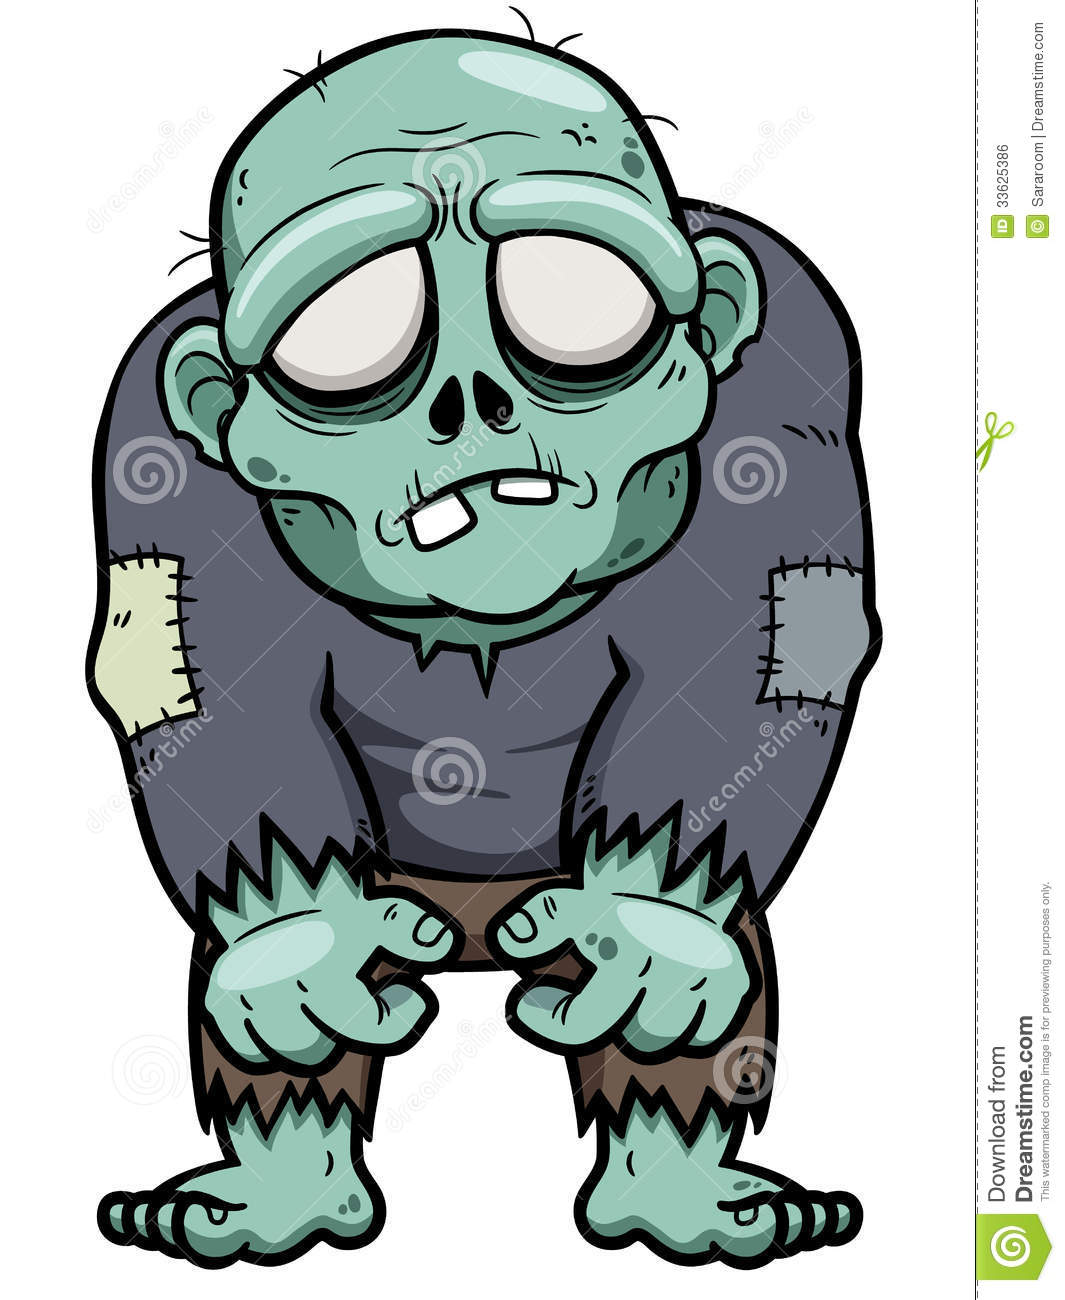 Cartoon zombie stock vector. Illustration of adult ...